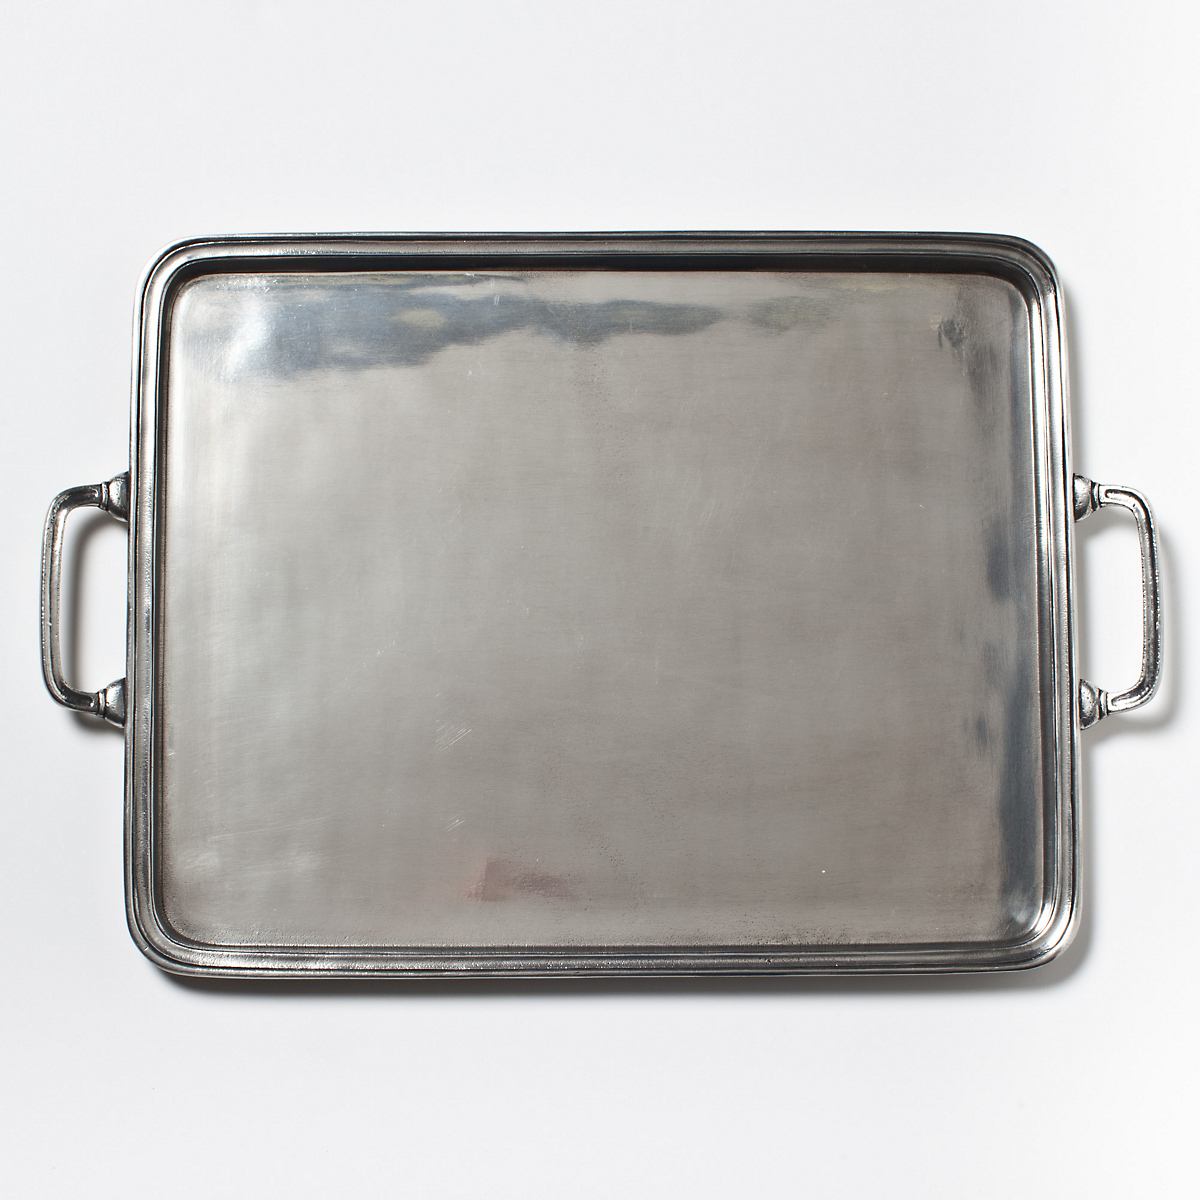 Match Tray With Handles